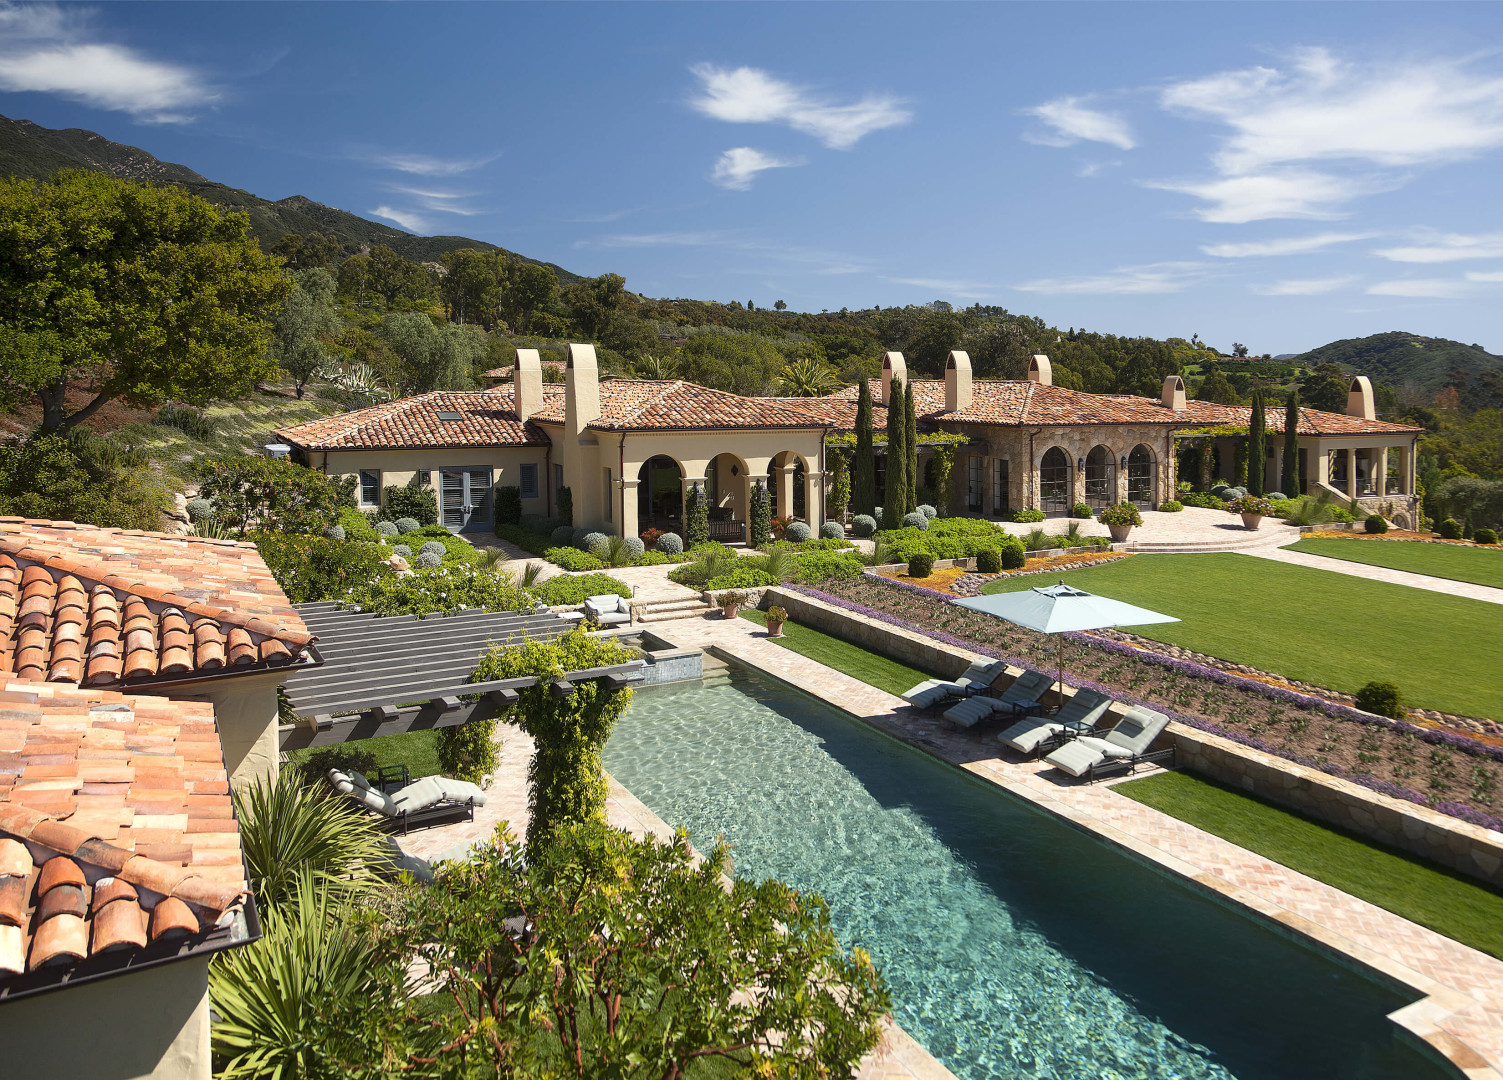 Montecito mansion spanish style mediterranean exterior 815 for Santa barbara luxury homes for sale